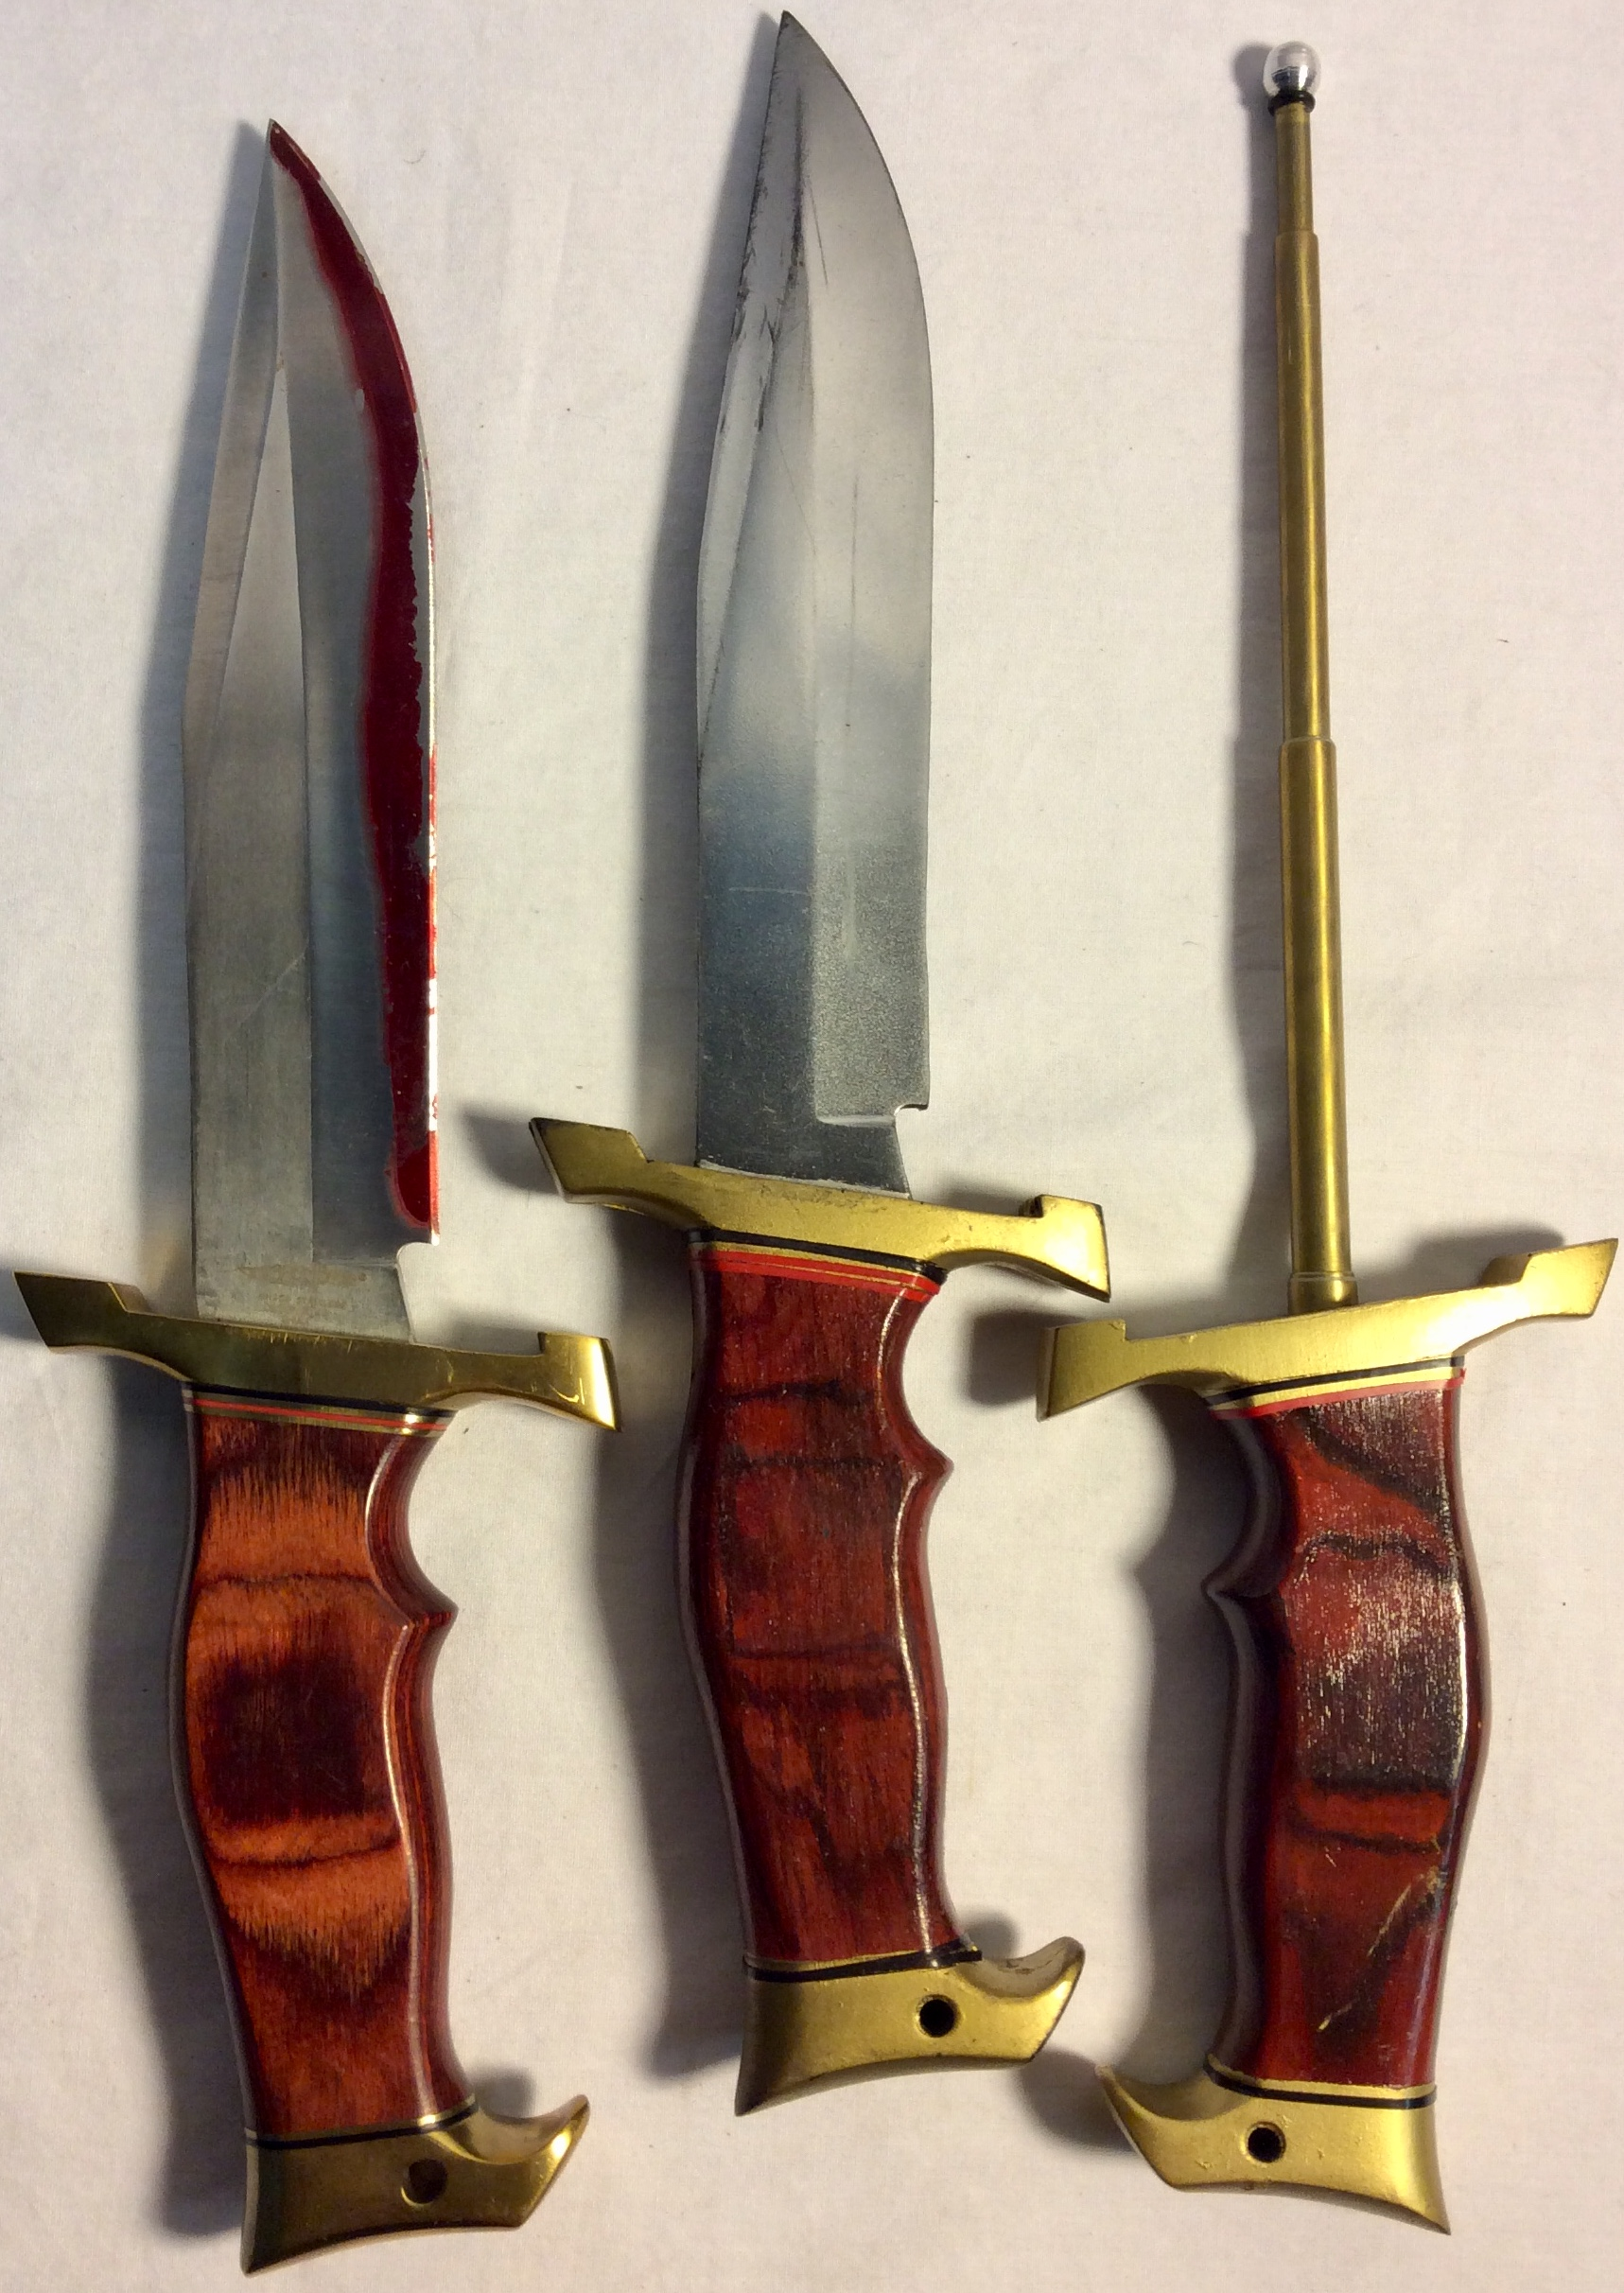 Hunting knife with wood and golden handle. x3 real(one blood stained / one rusty) x3 rubber x2 VFX